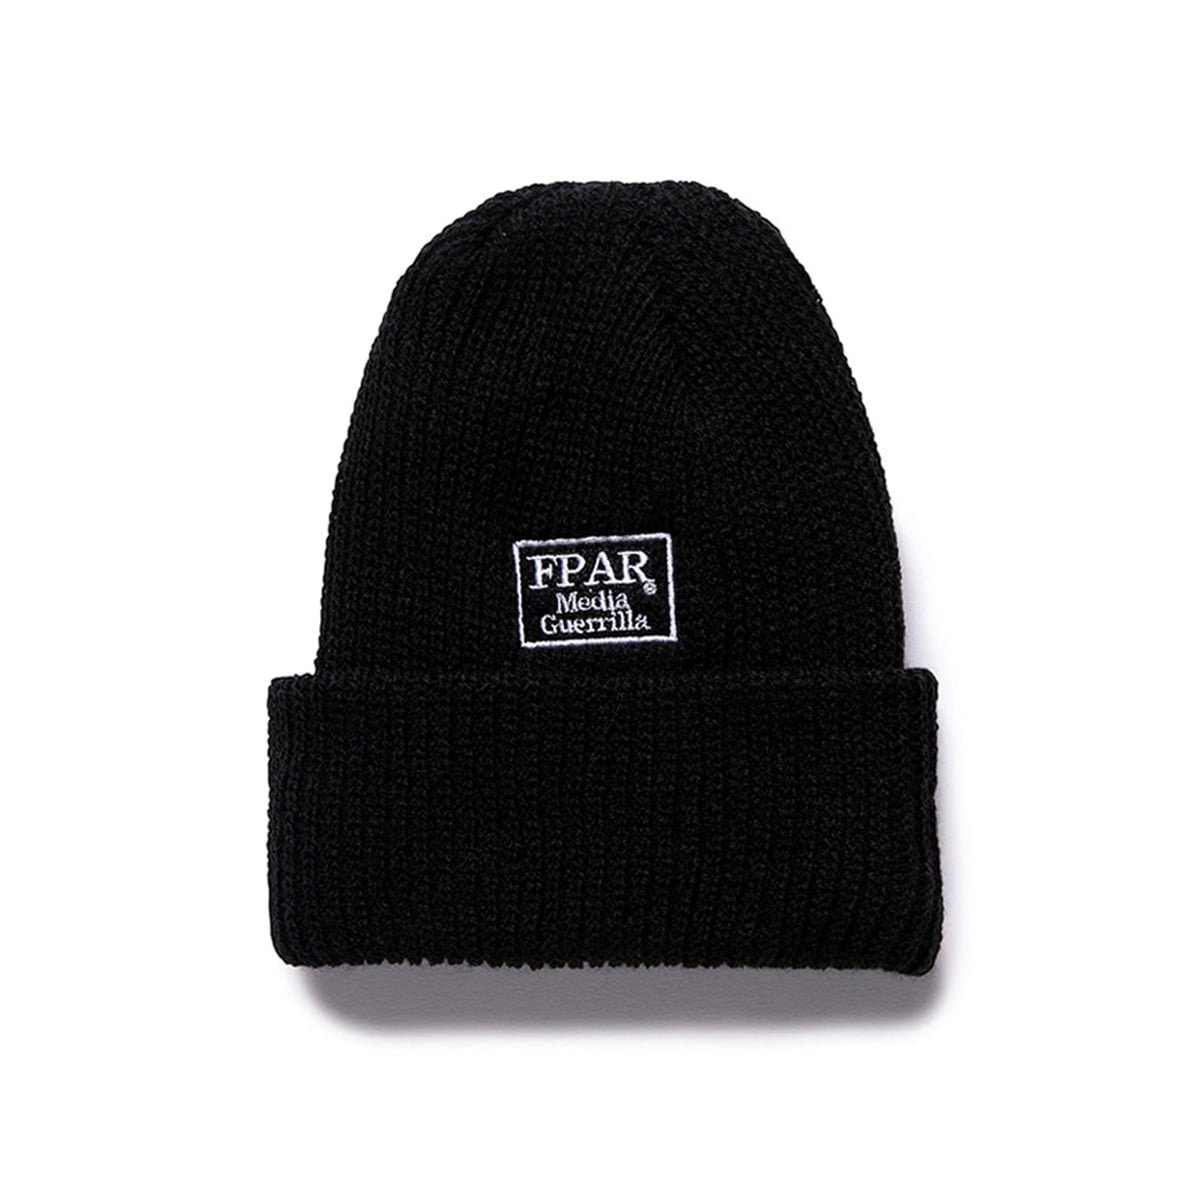 20AW FORTY PERCENT AGAINST RIGHTS PROSPECTIVE BEANIE 兩色